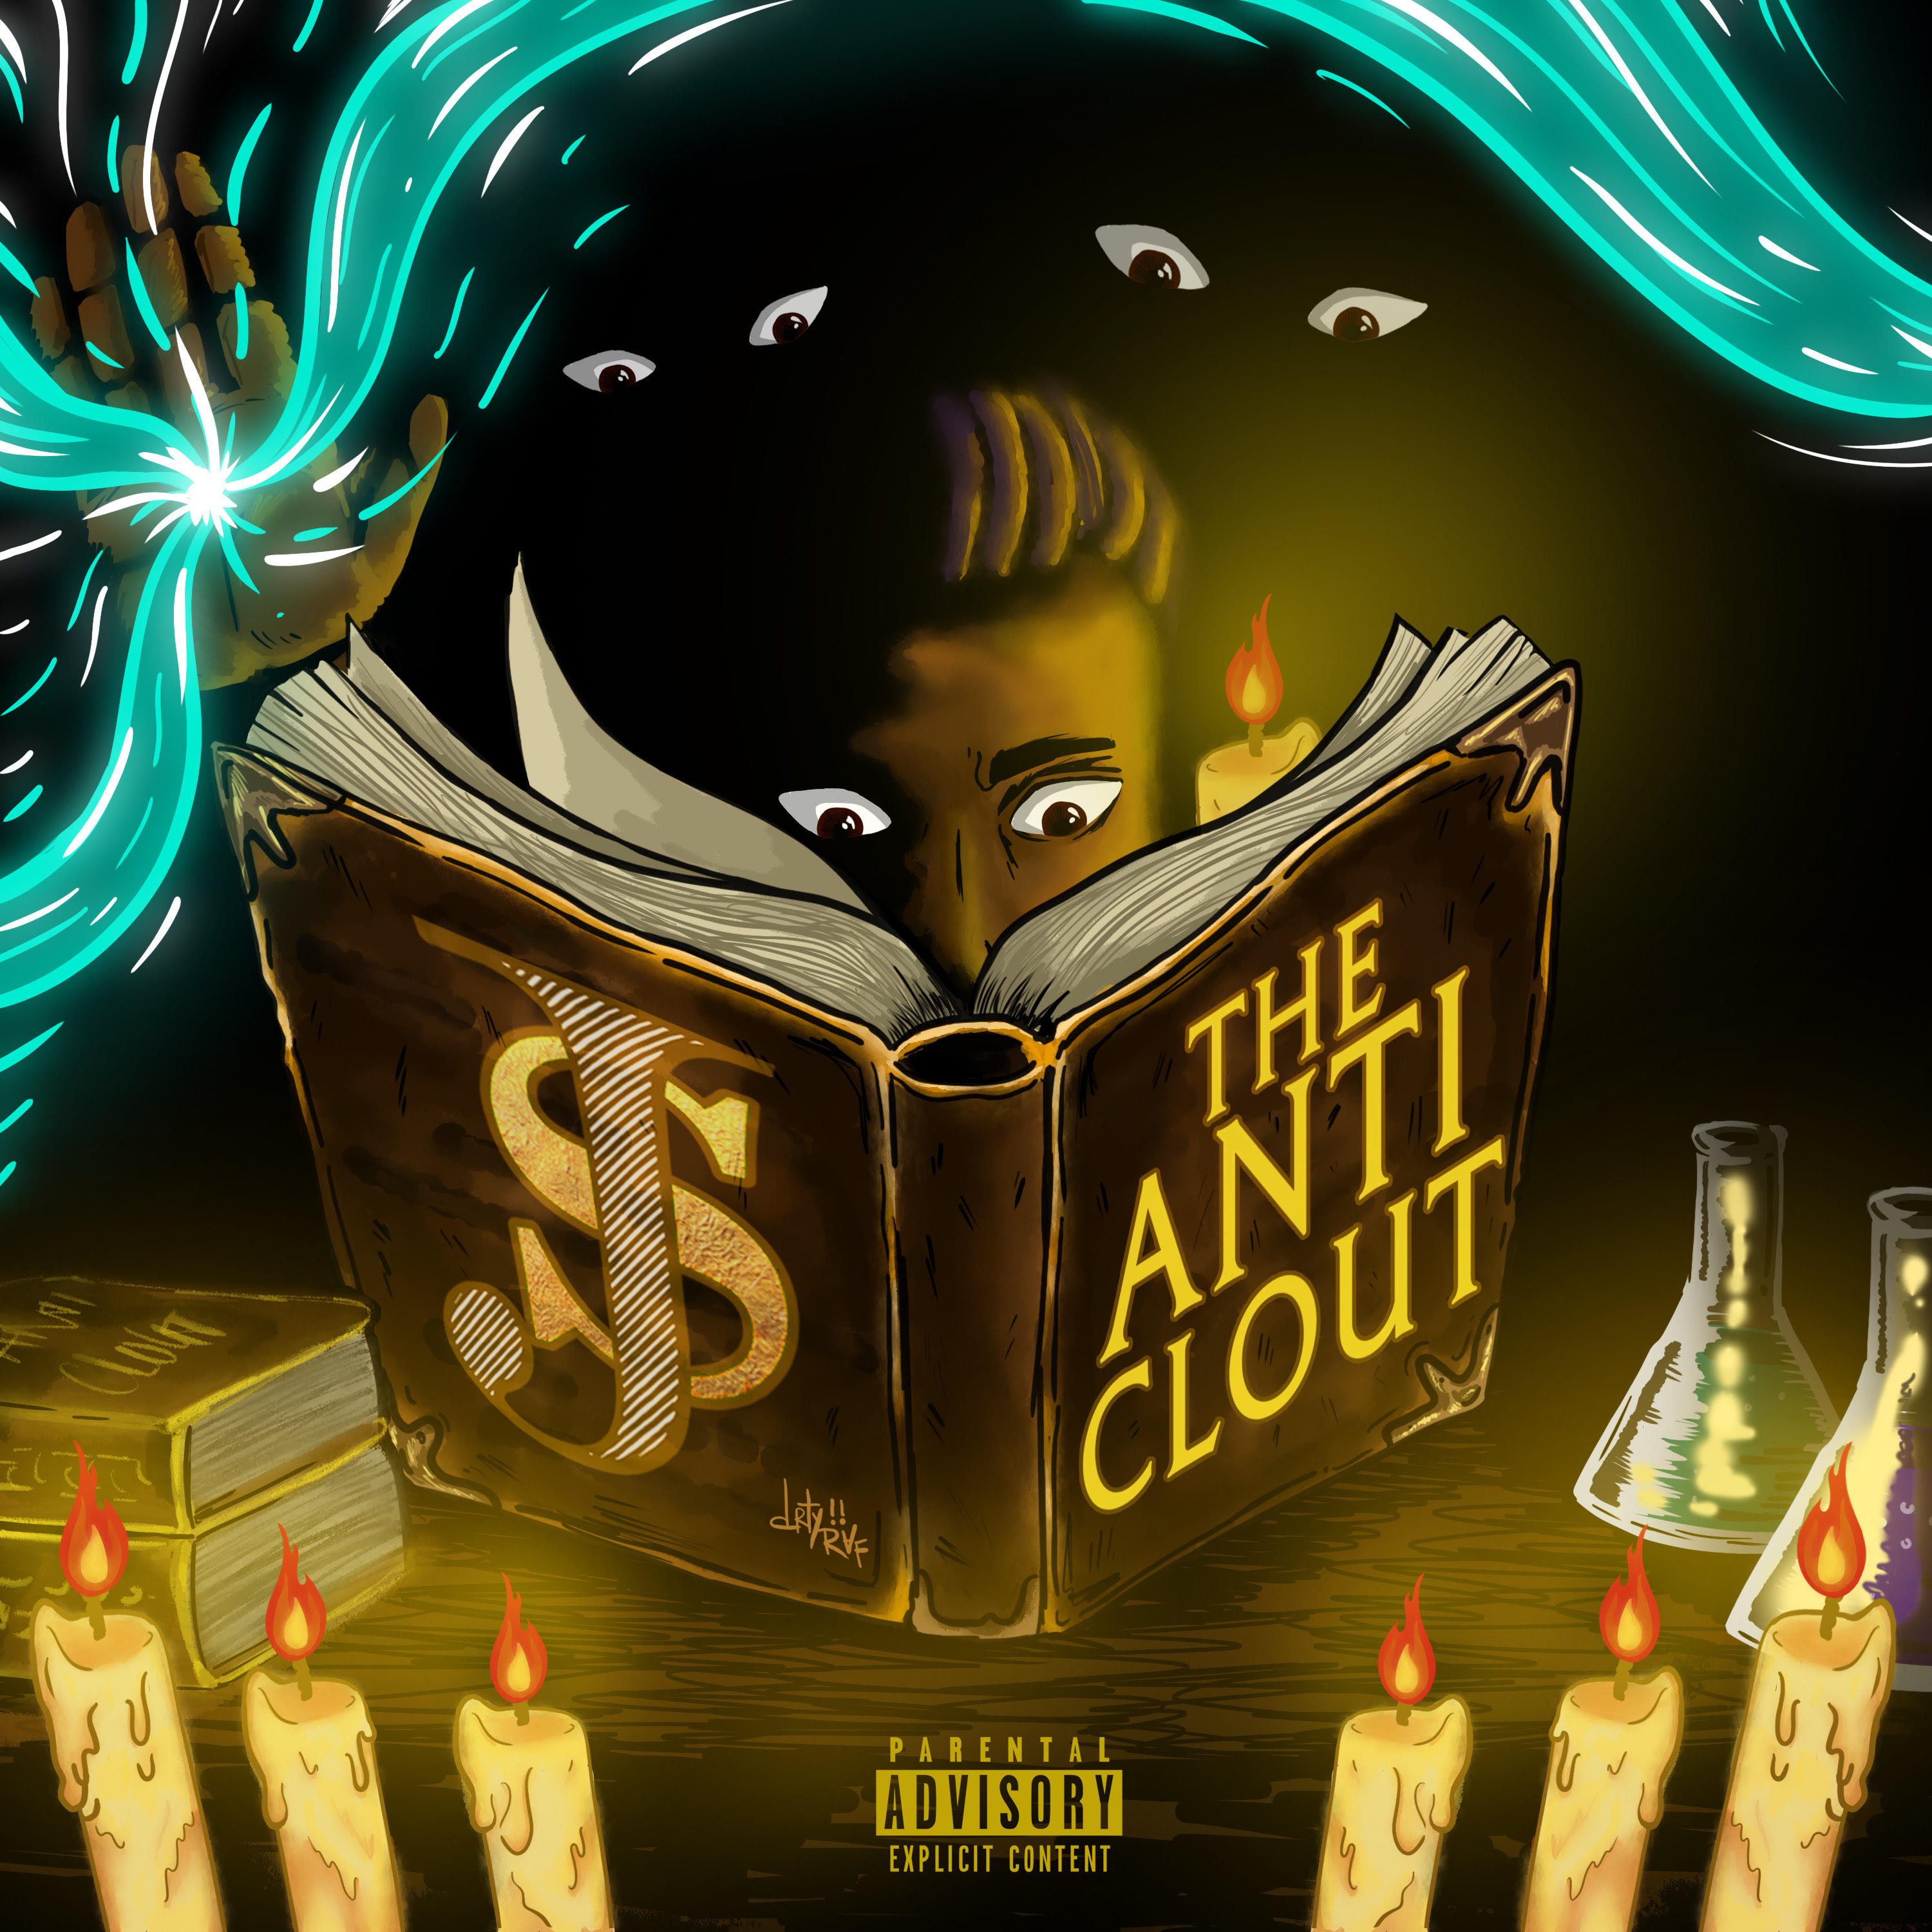 [Mixtape] J Above The $ – The Anti Clout